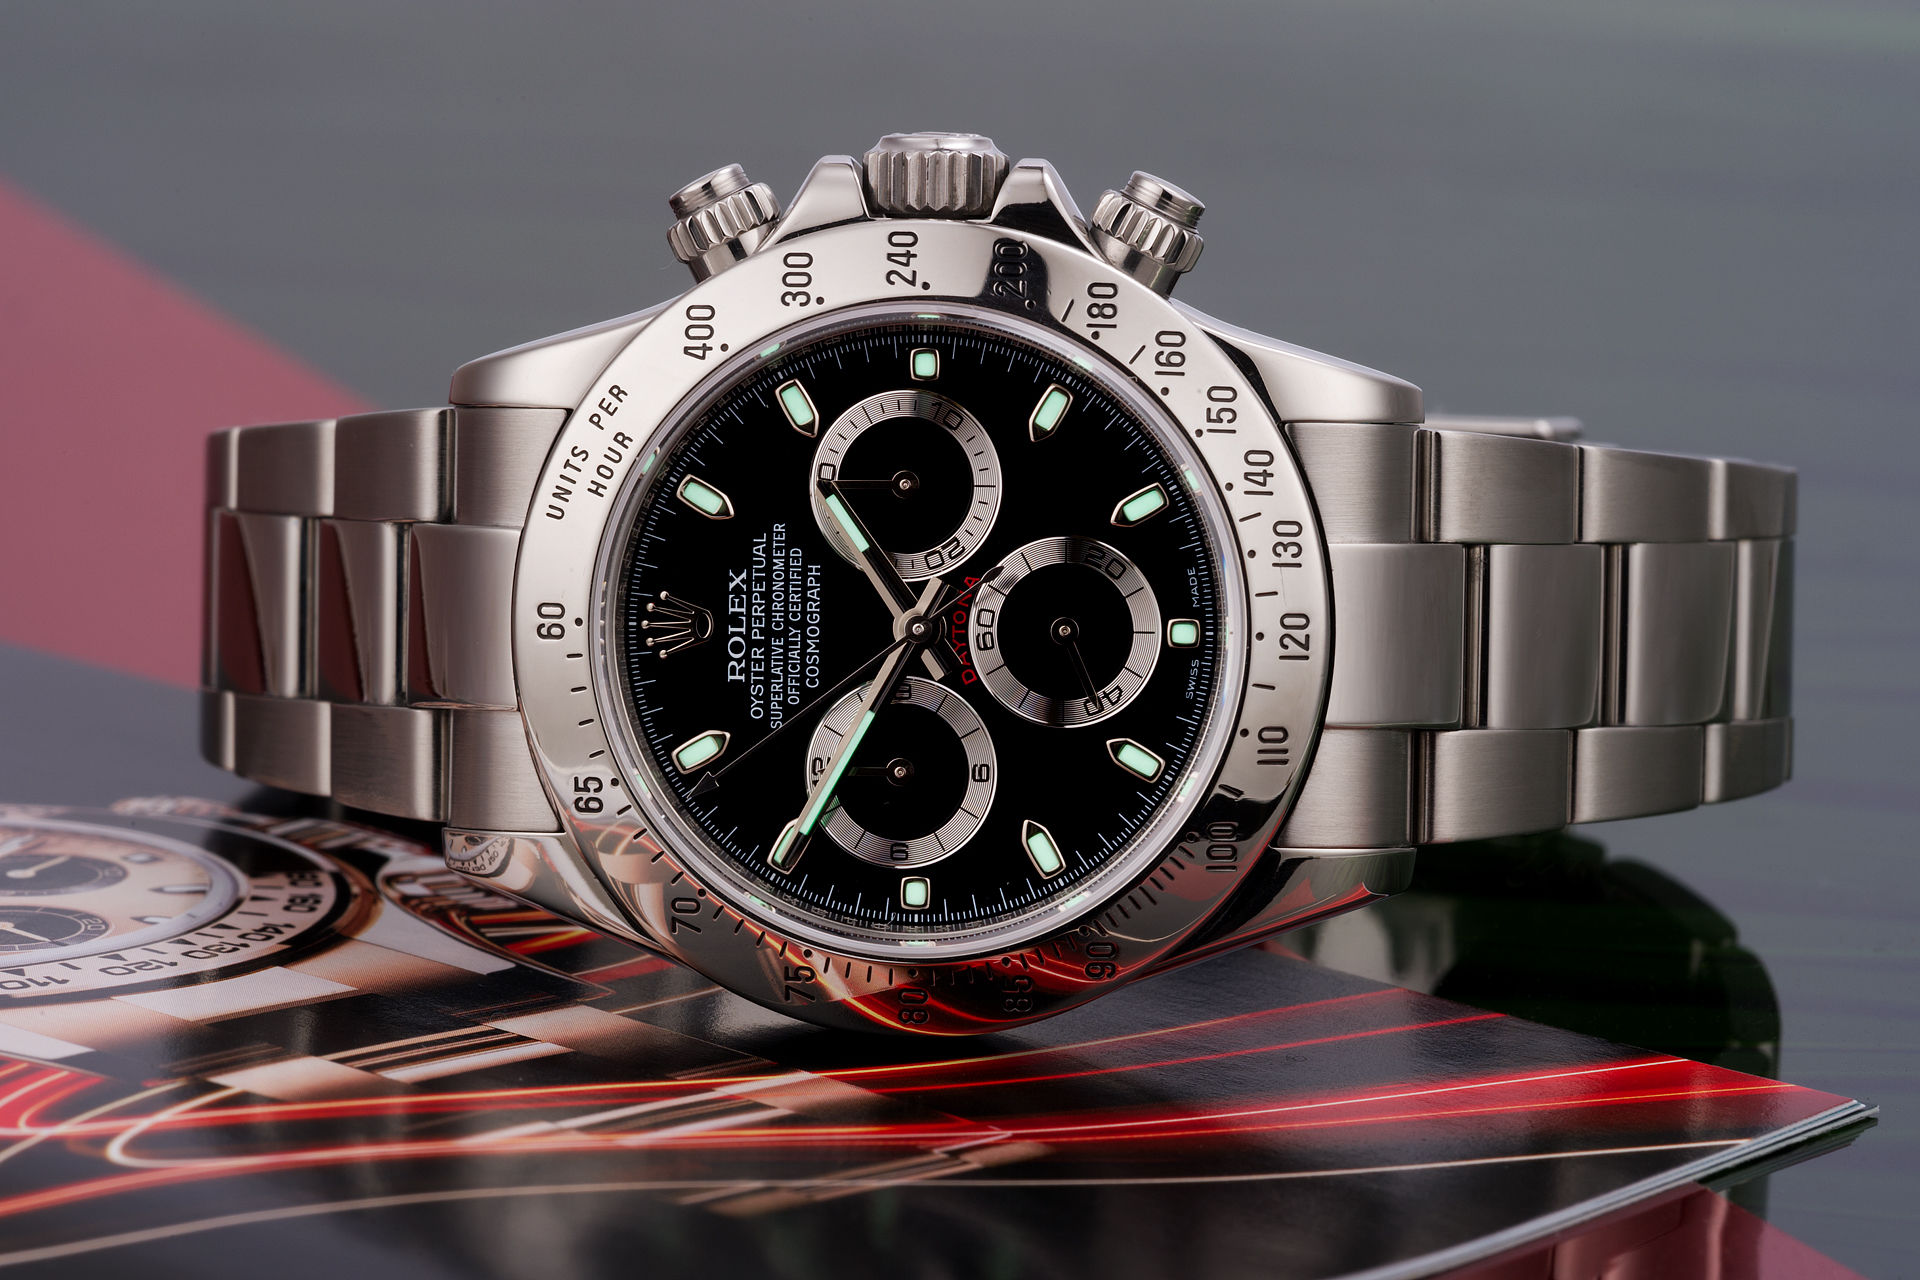 ref 116520 | Discontinued Model 'Complete Set'  | Rolex Cosmograph Daytona